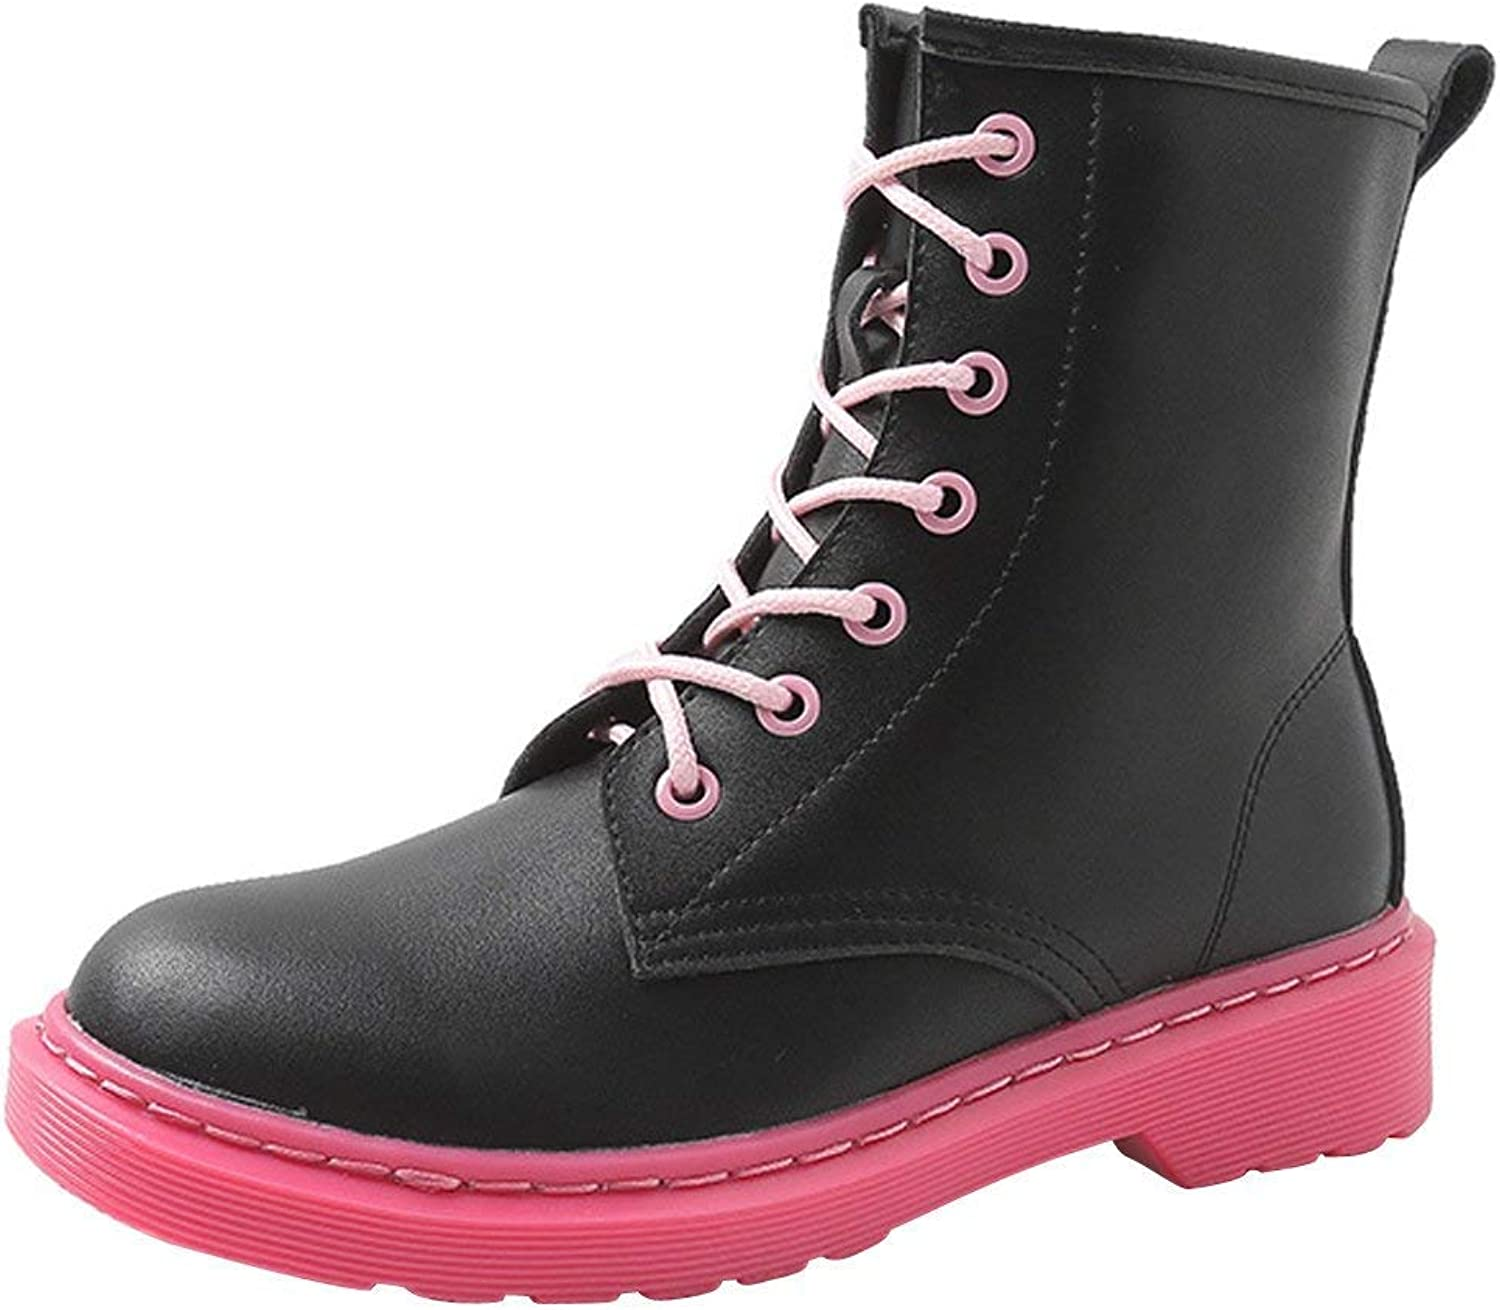 F1rst Rate Womens Heel Motorcycle Boots Platform Waterproof Lace-up Short Ankle Booties